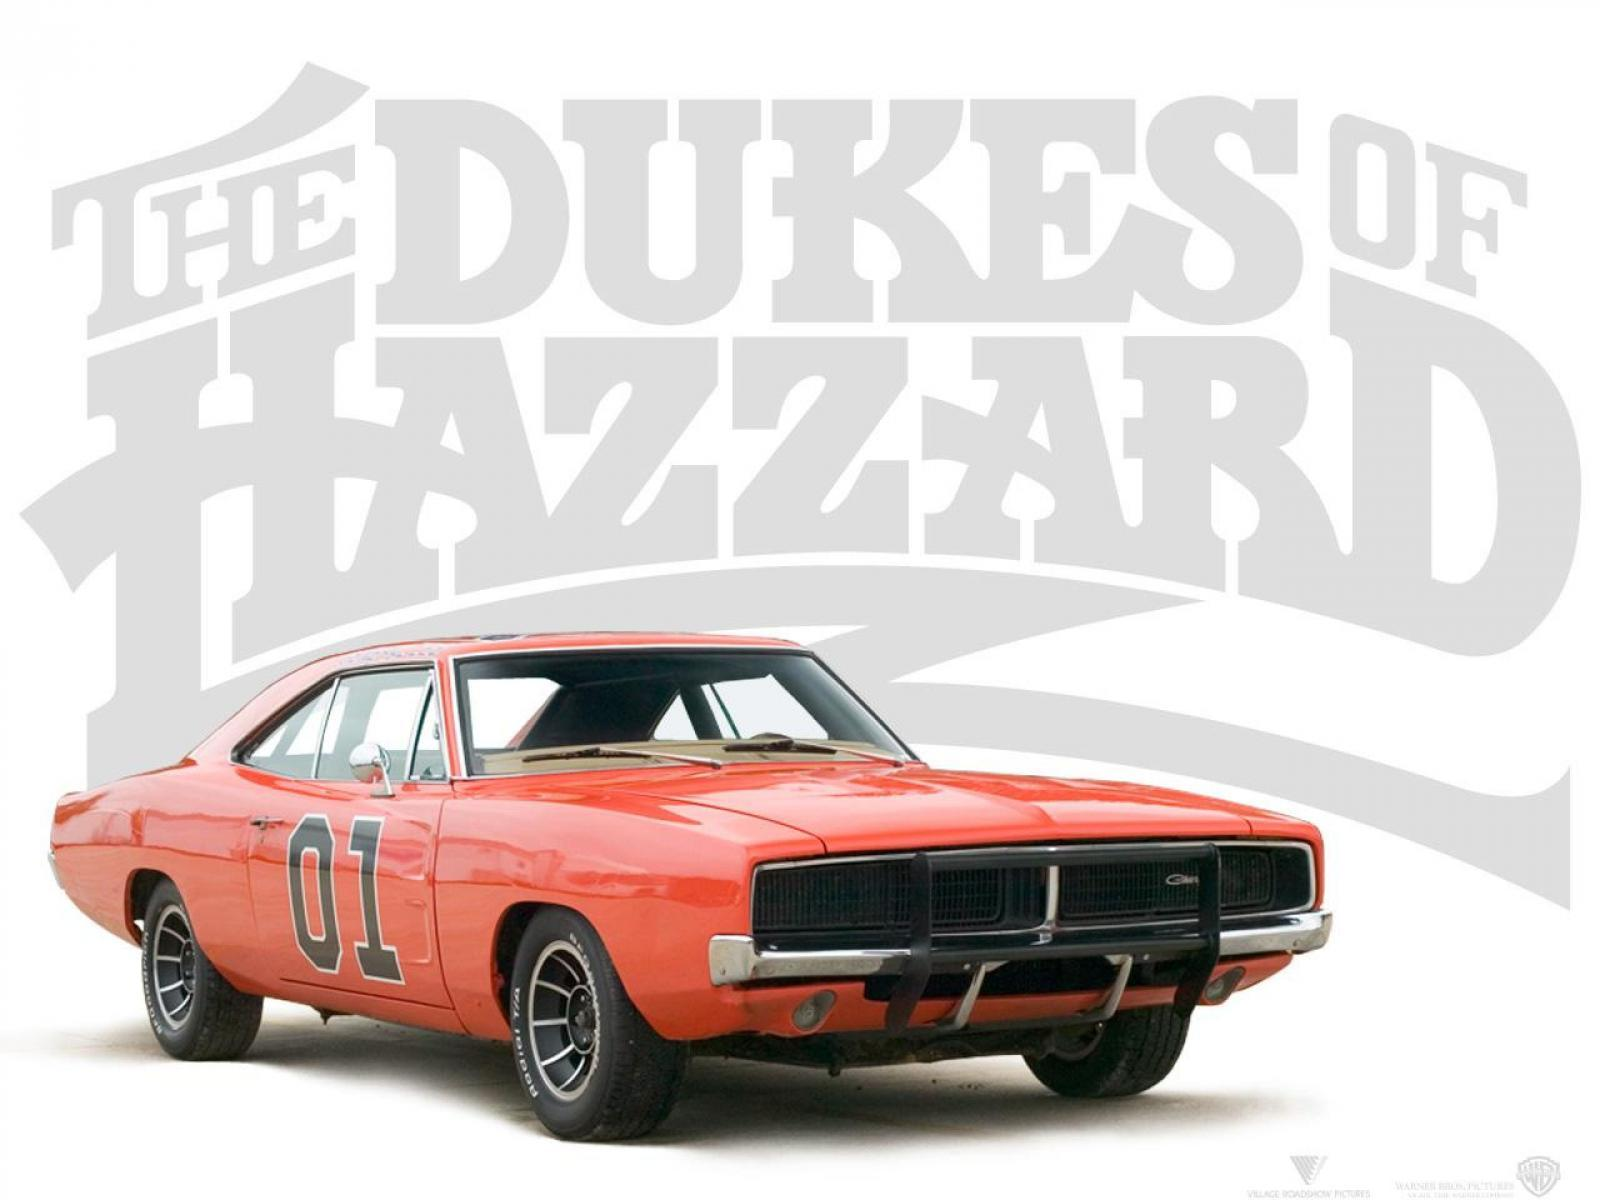 Image gallery for The Dukes of Hazzard - FilmAffinity